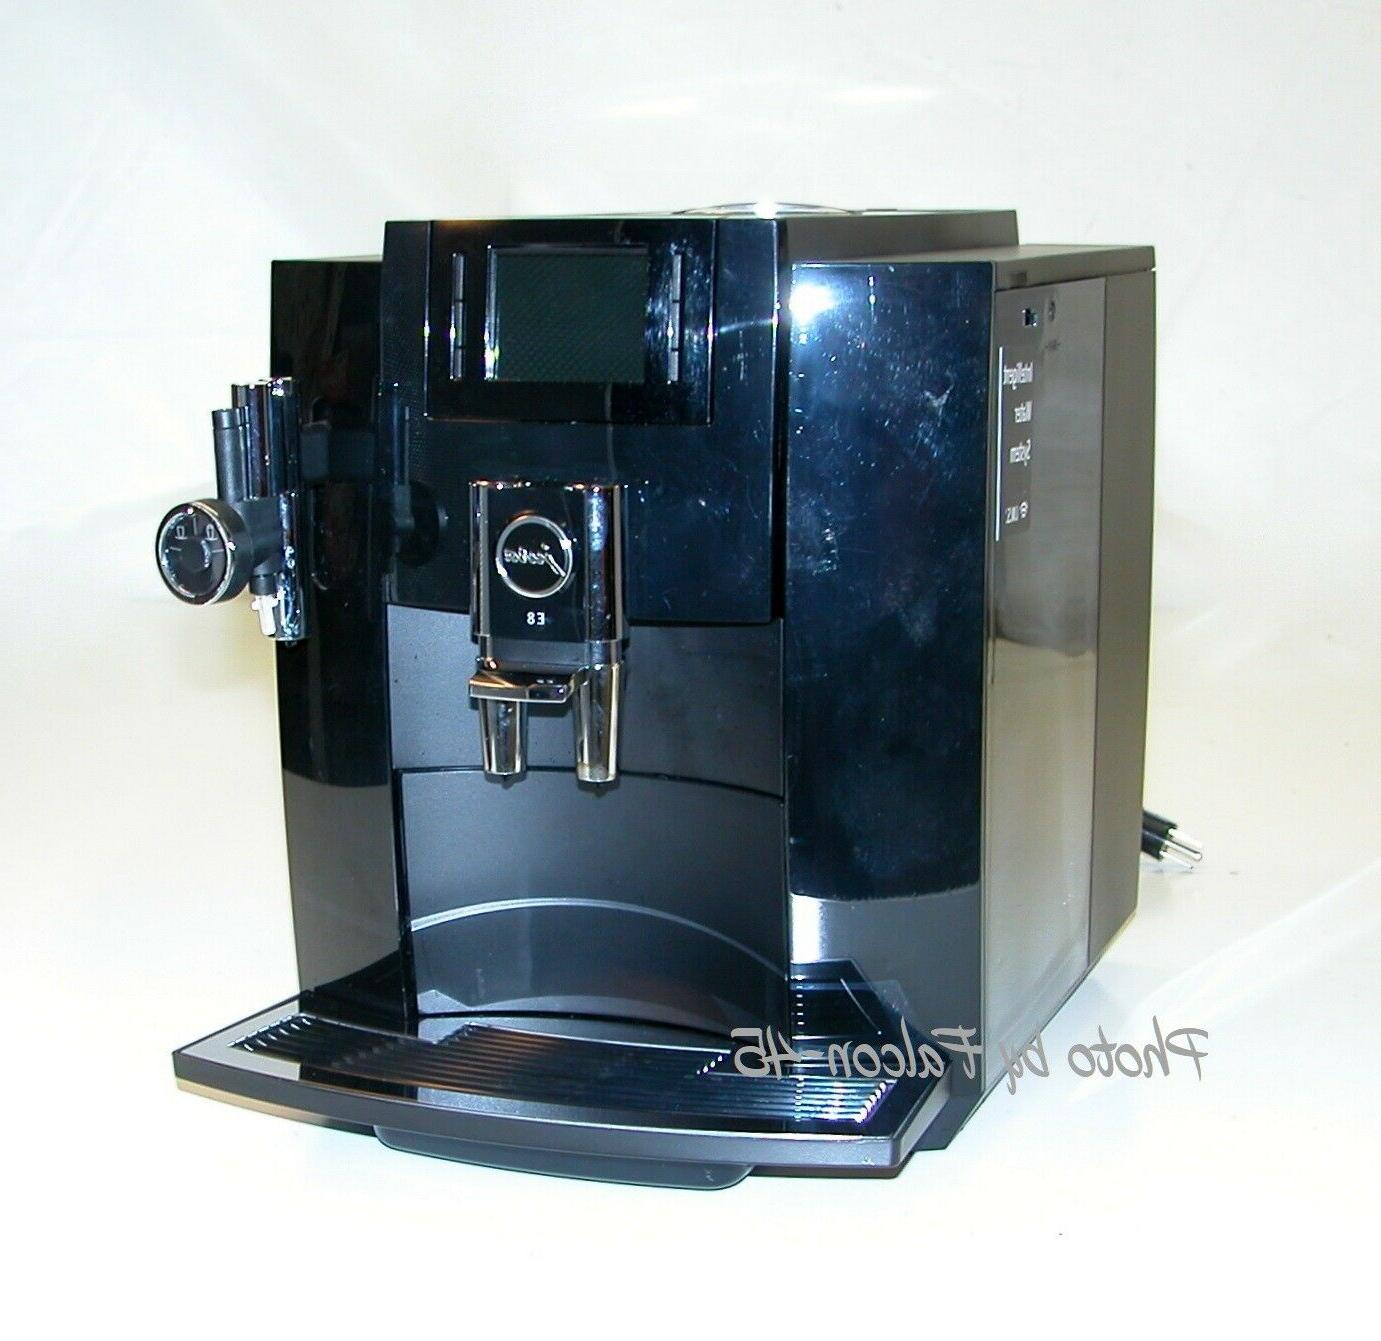 15109 e8 super automatic espresso coffee machine